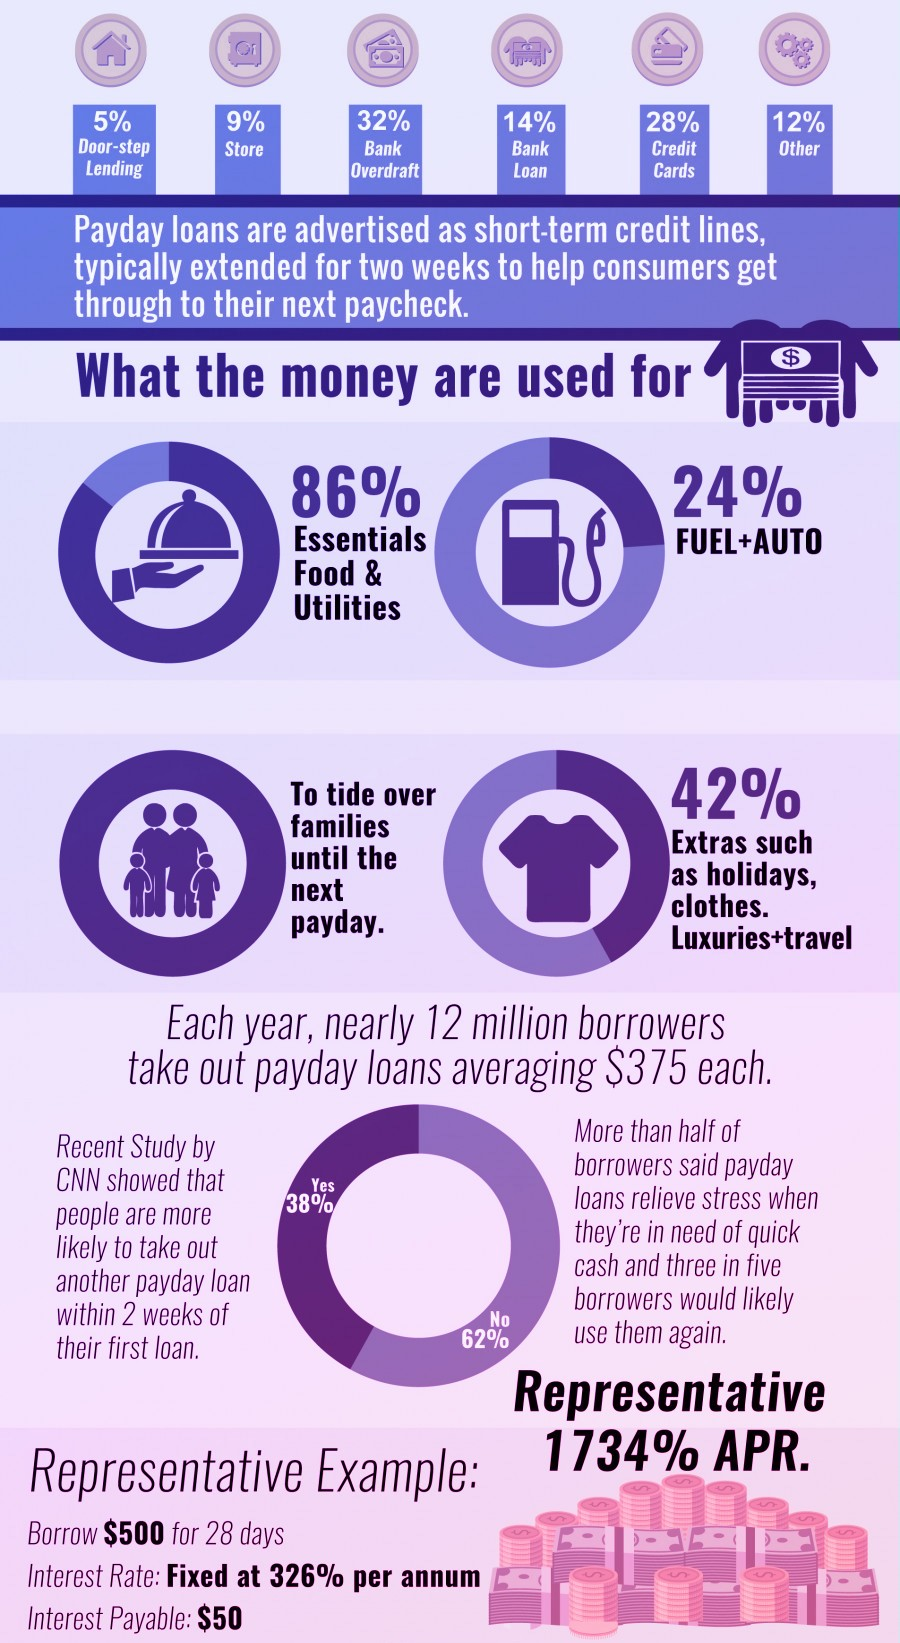 Payday Loan facts